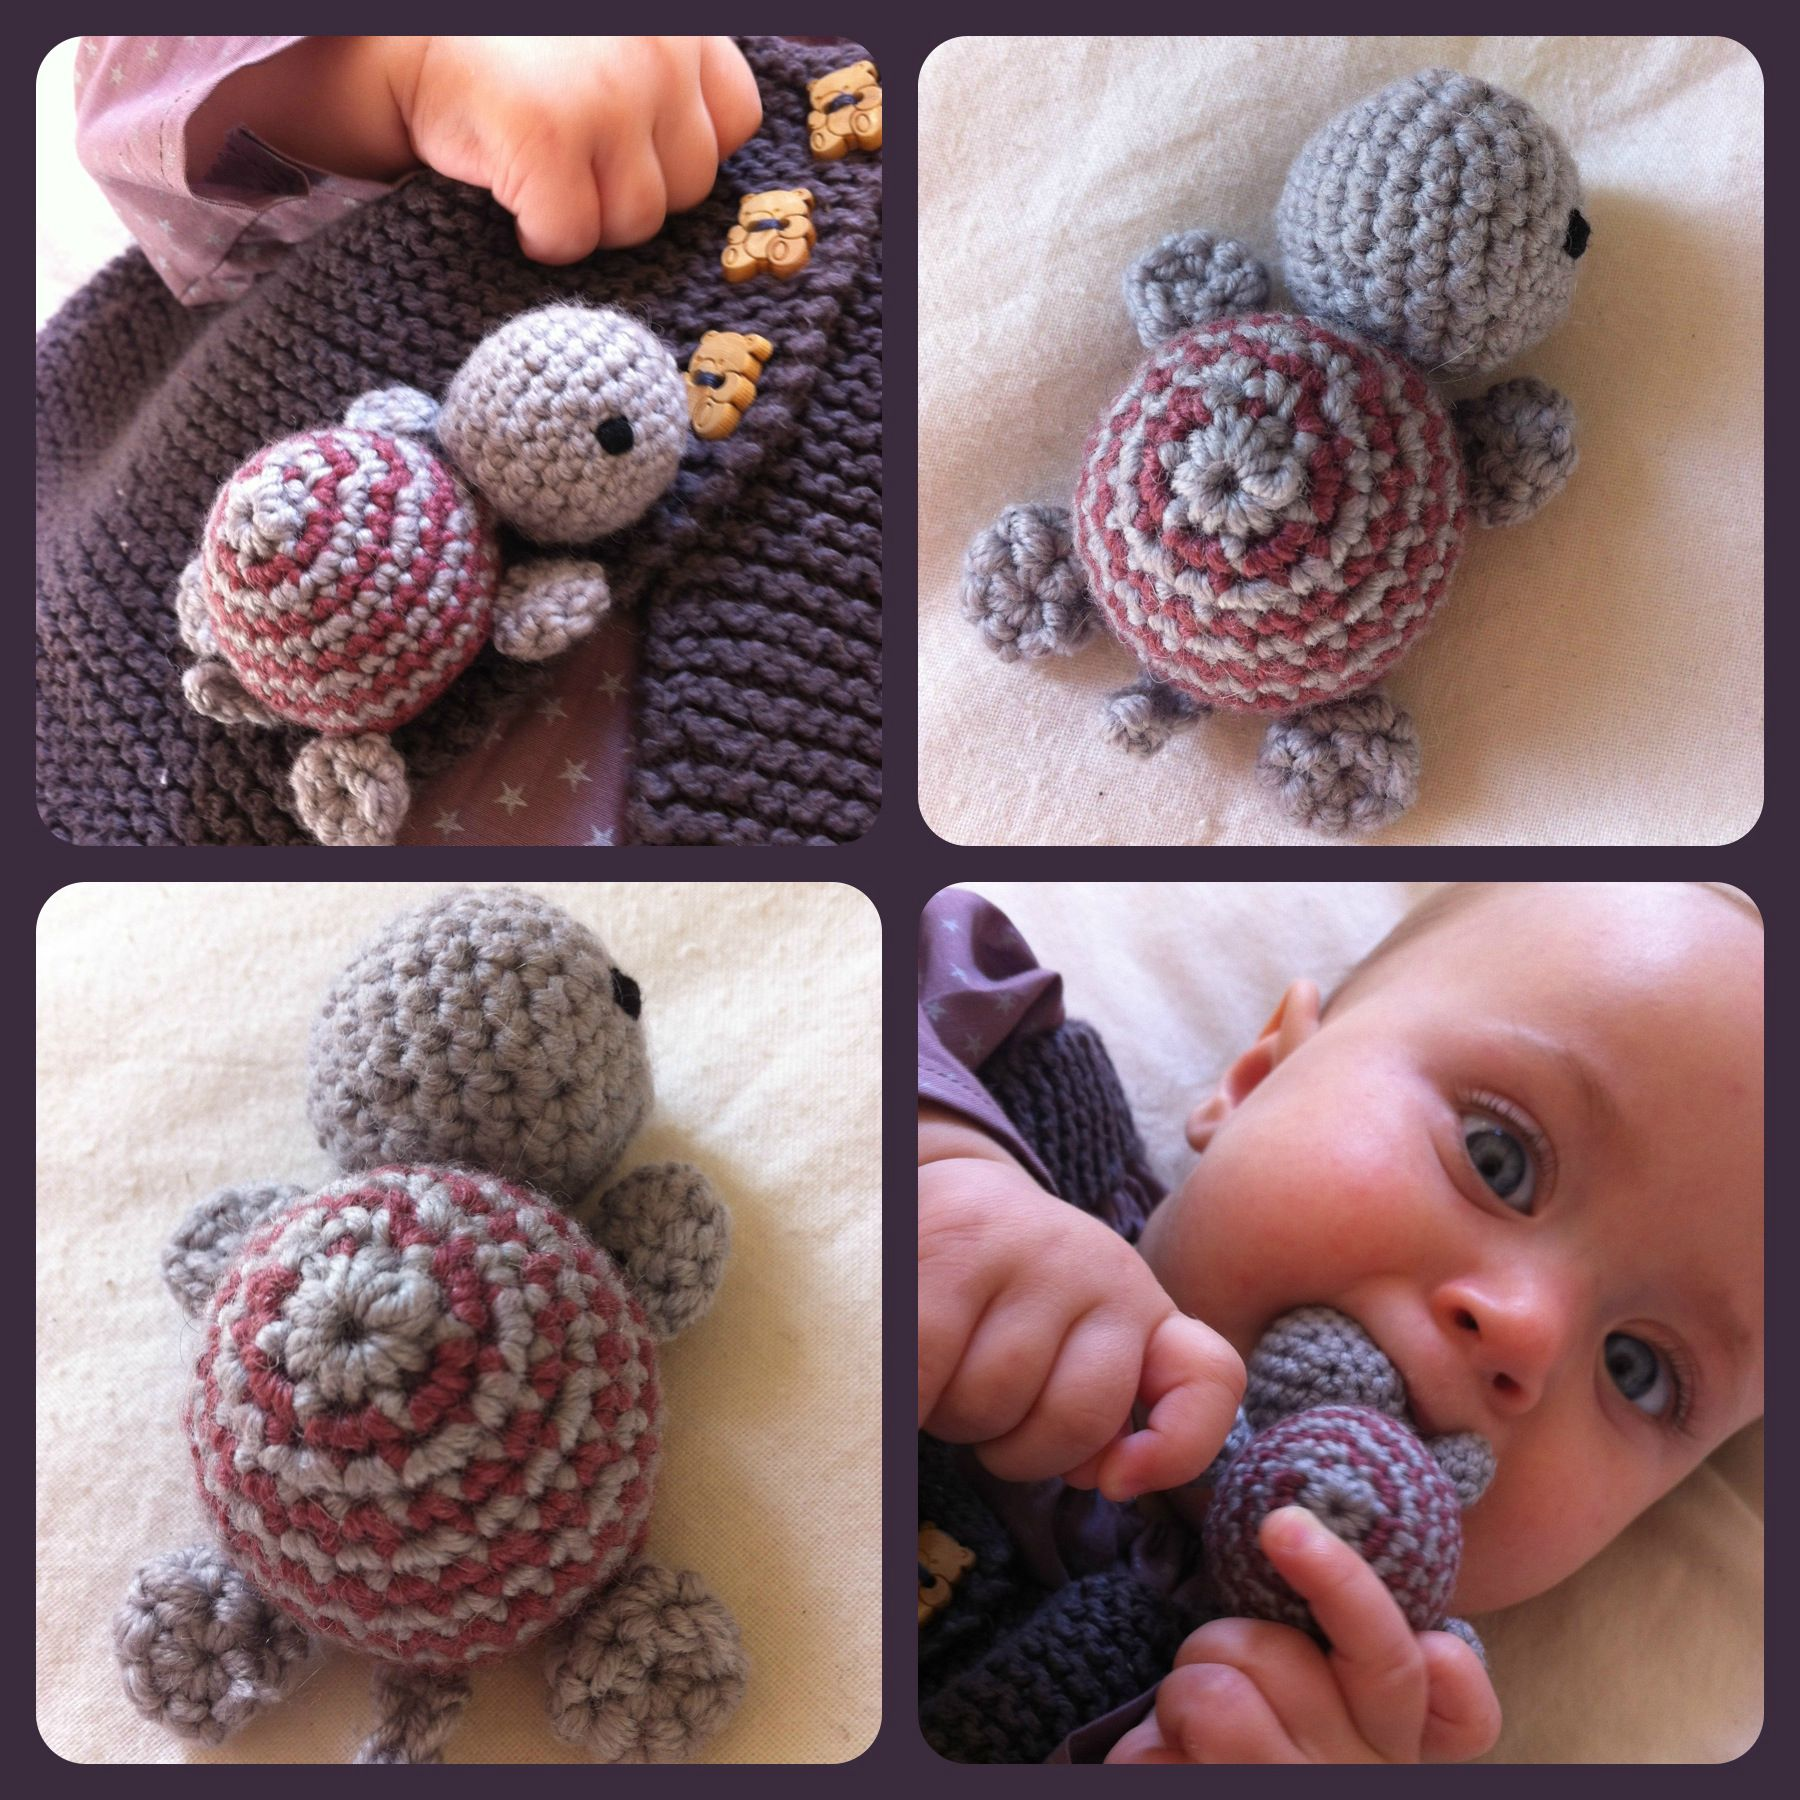 Mini tortue au crochet